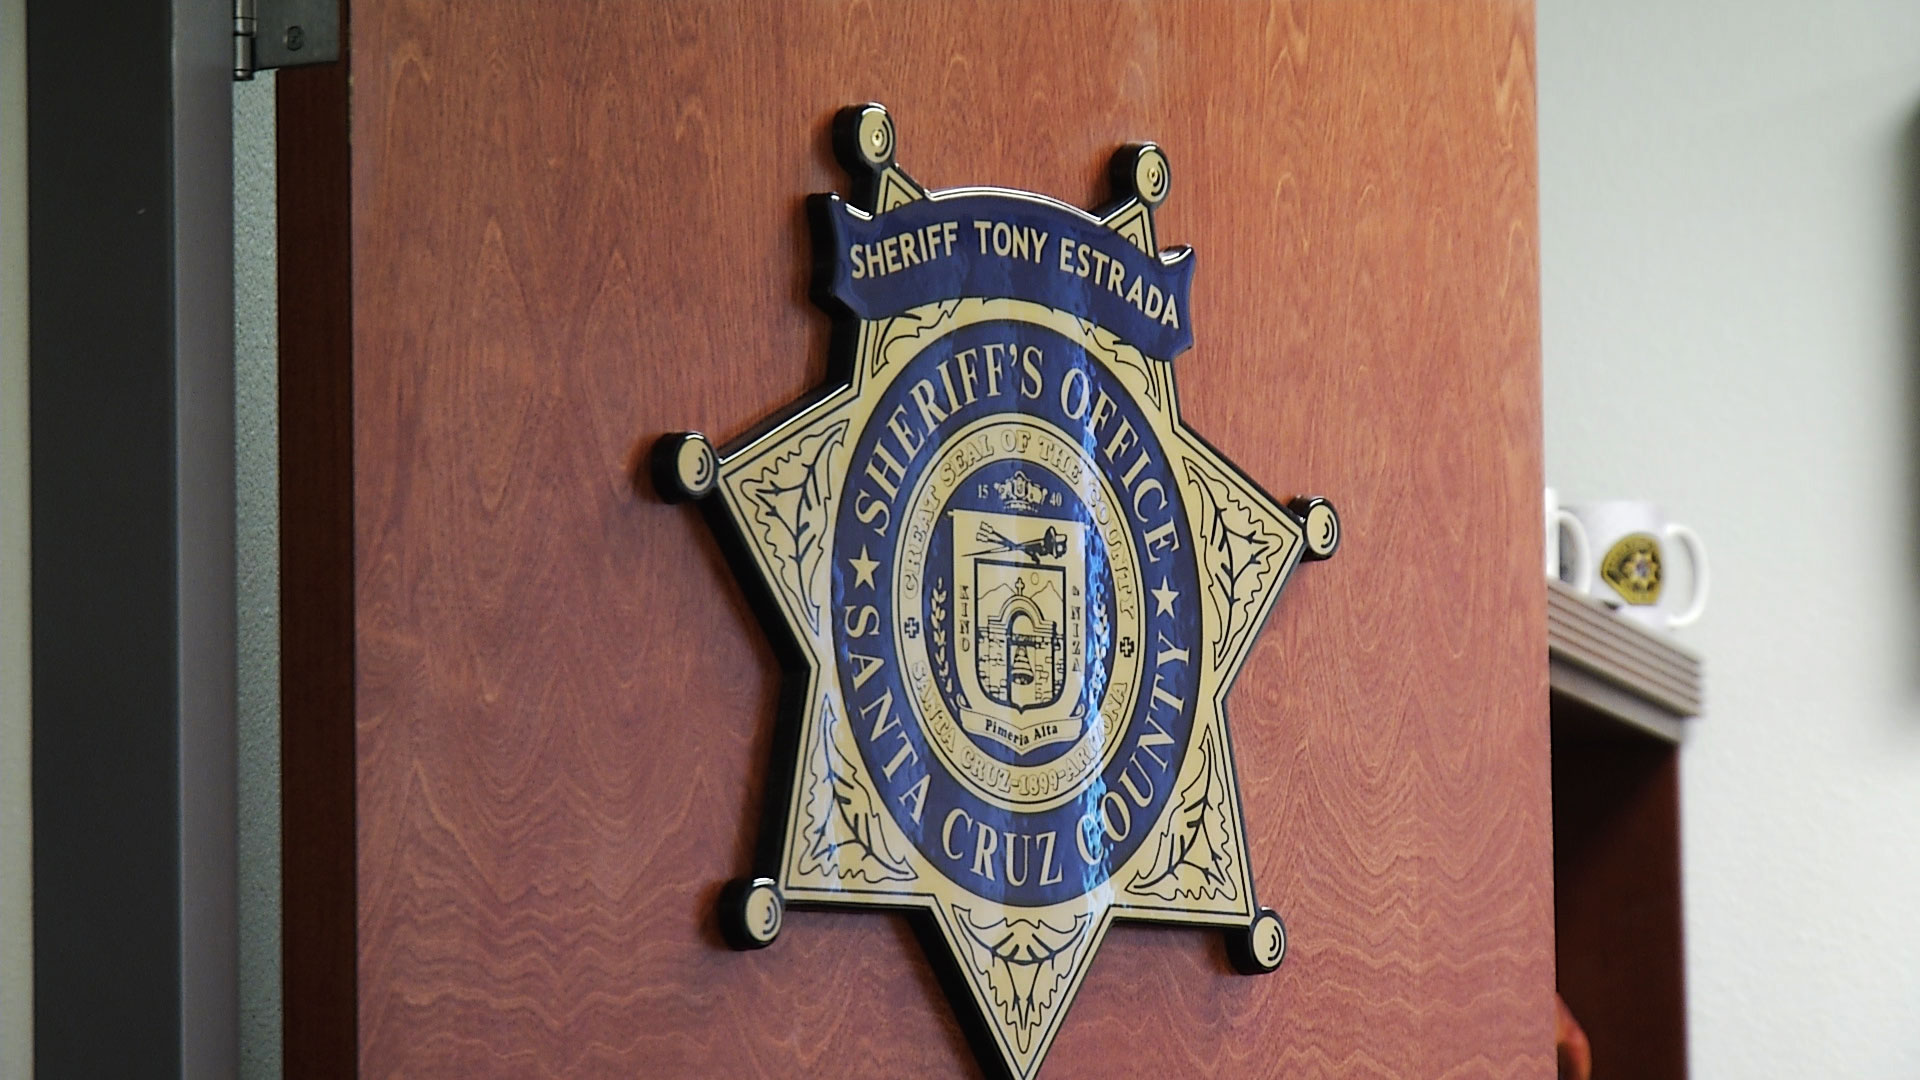 A sheriff's star sign hangs on the door of Santa Cruz County Sheriff Tony Estrada's office at the department in Nogales.